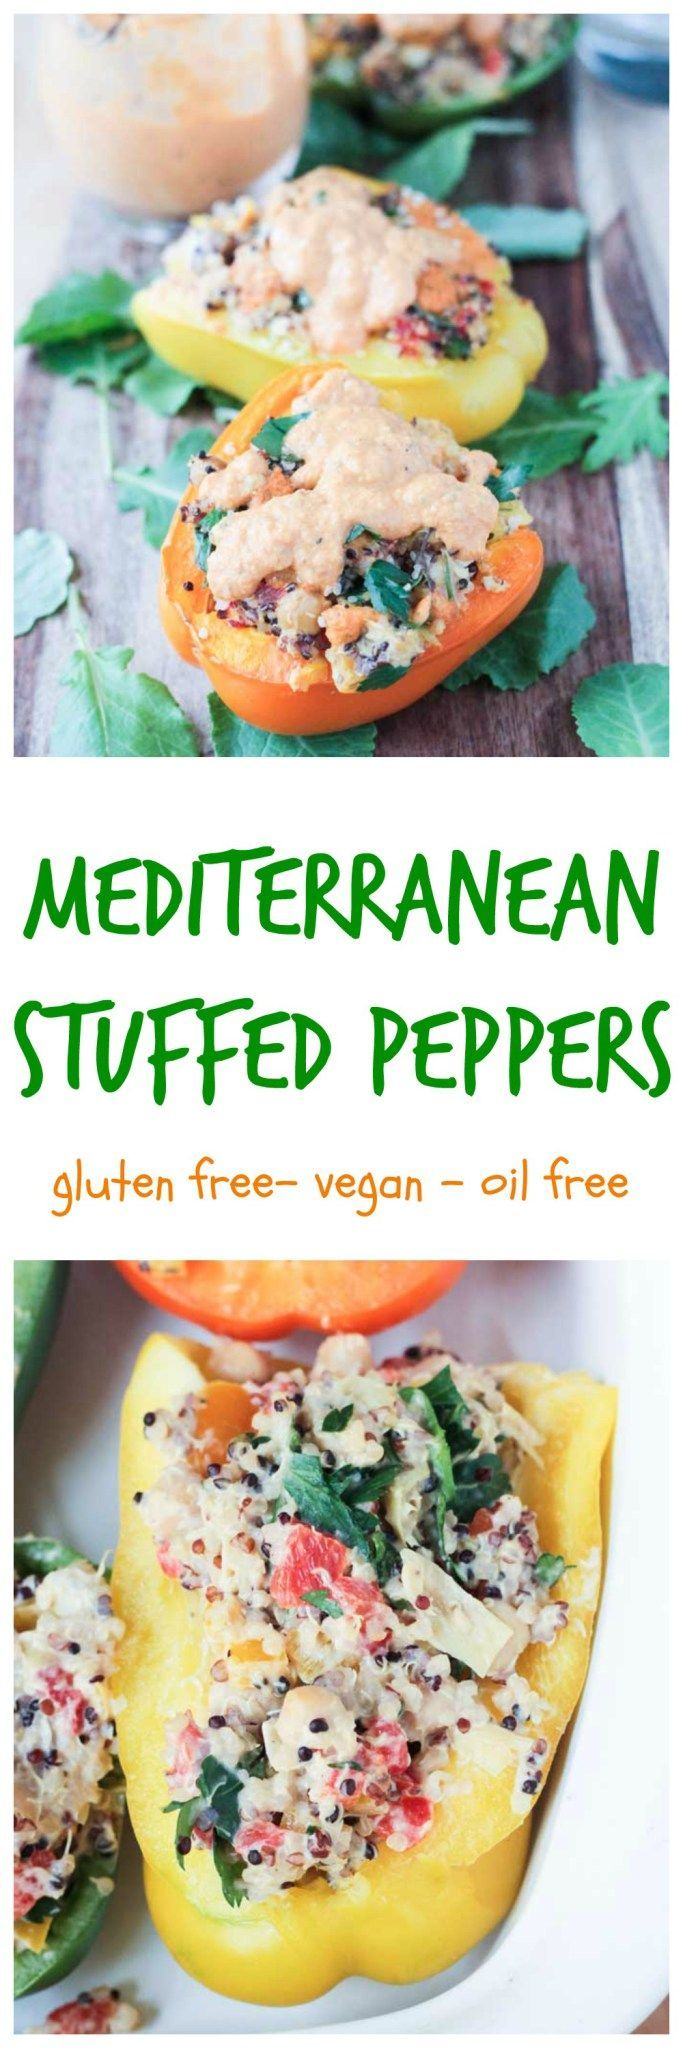 Mediterranean Stuffed Peppers -fresh and bright with the flavors of the mediterranean. A lightened up yet filling dinner that's perfect for spring! #vegan #glutenfree #mediterranean #vegetarian #meatless #meatlessmonday #stuffedpeppers #chickpeas #quinoa #healthy